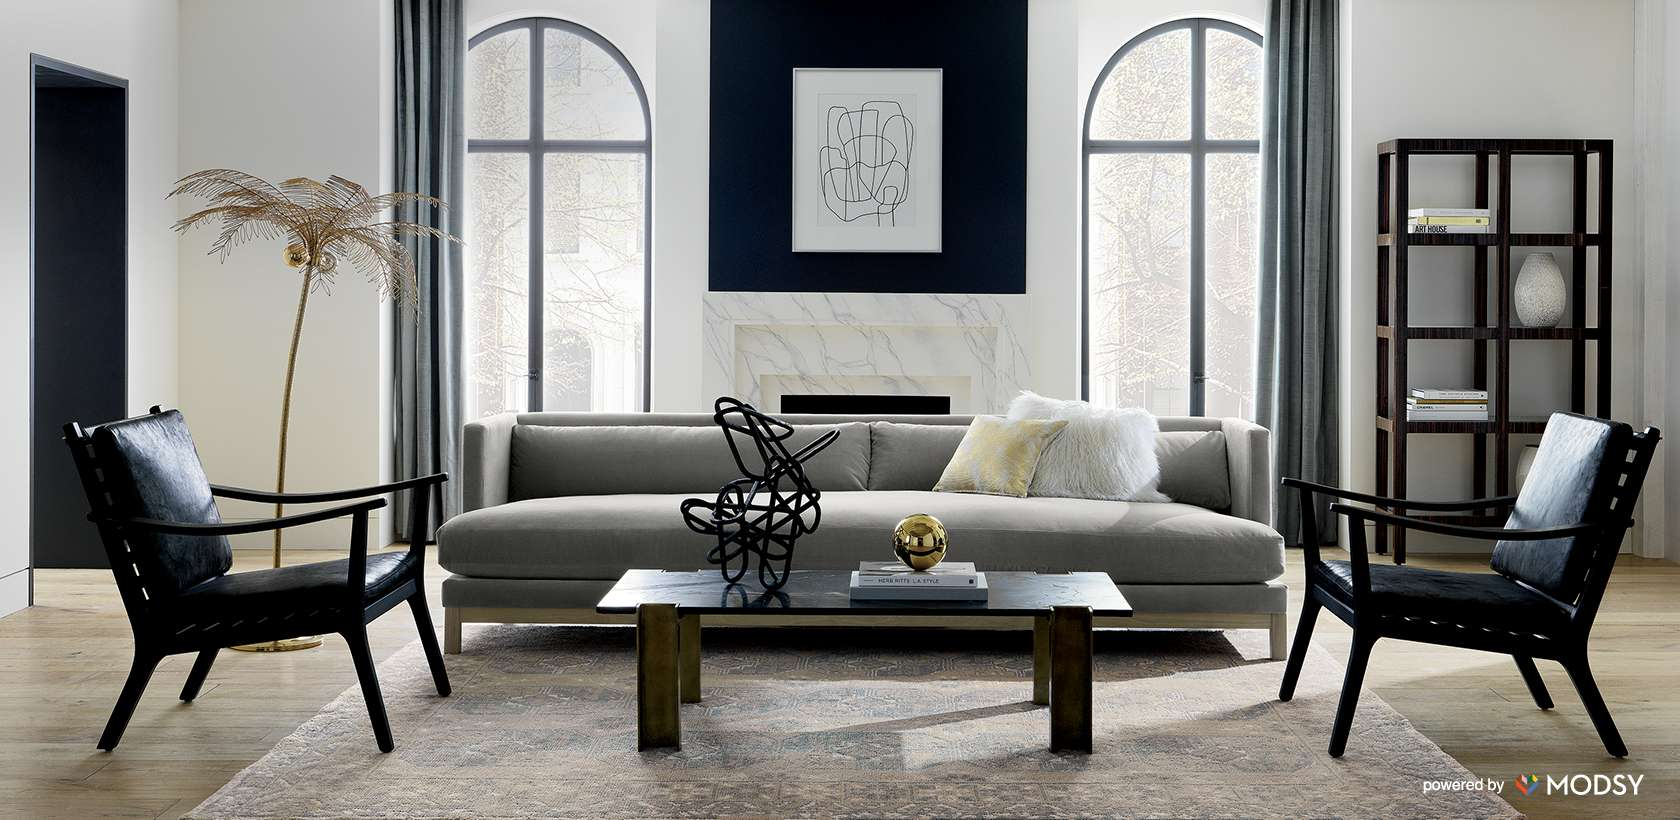 Modern and Unique Furniture Design | CB2